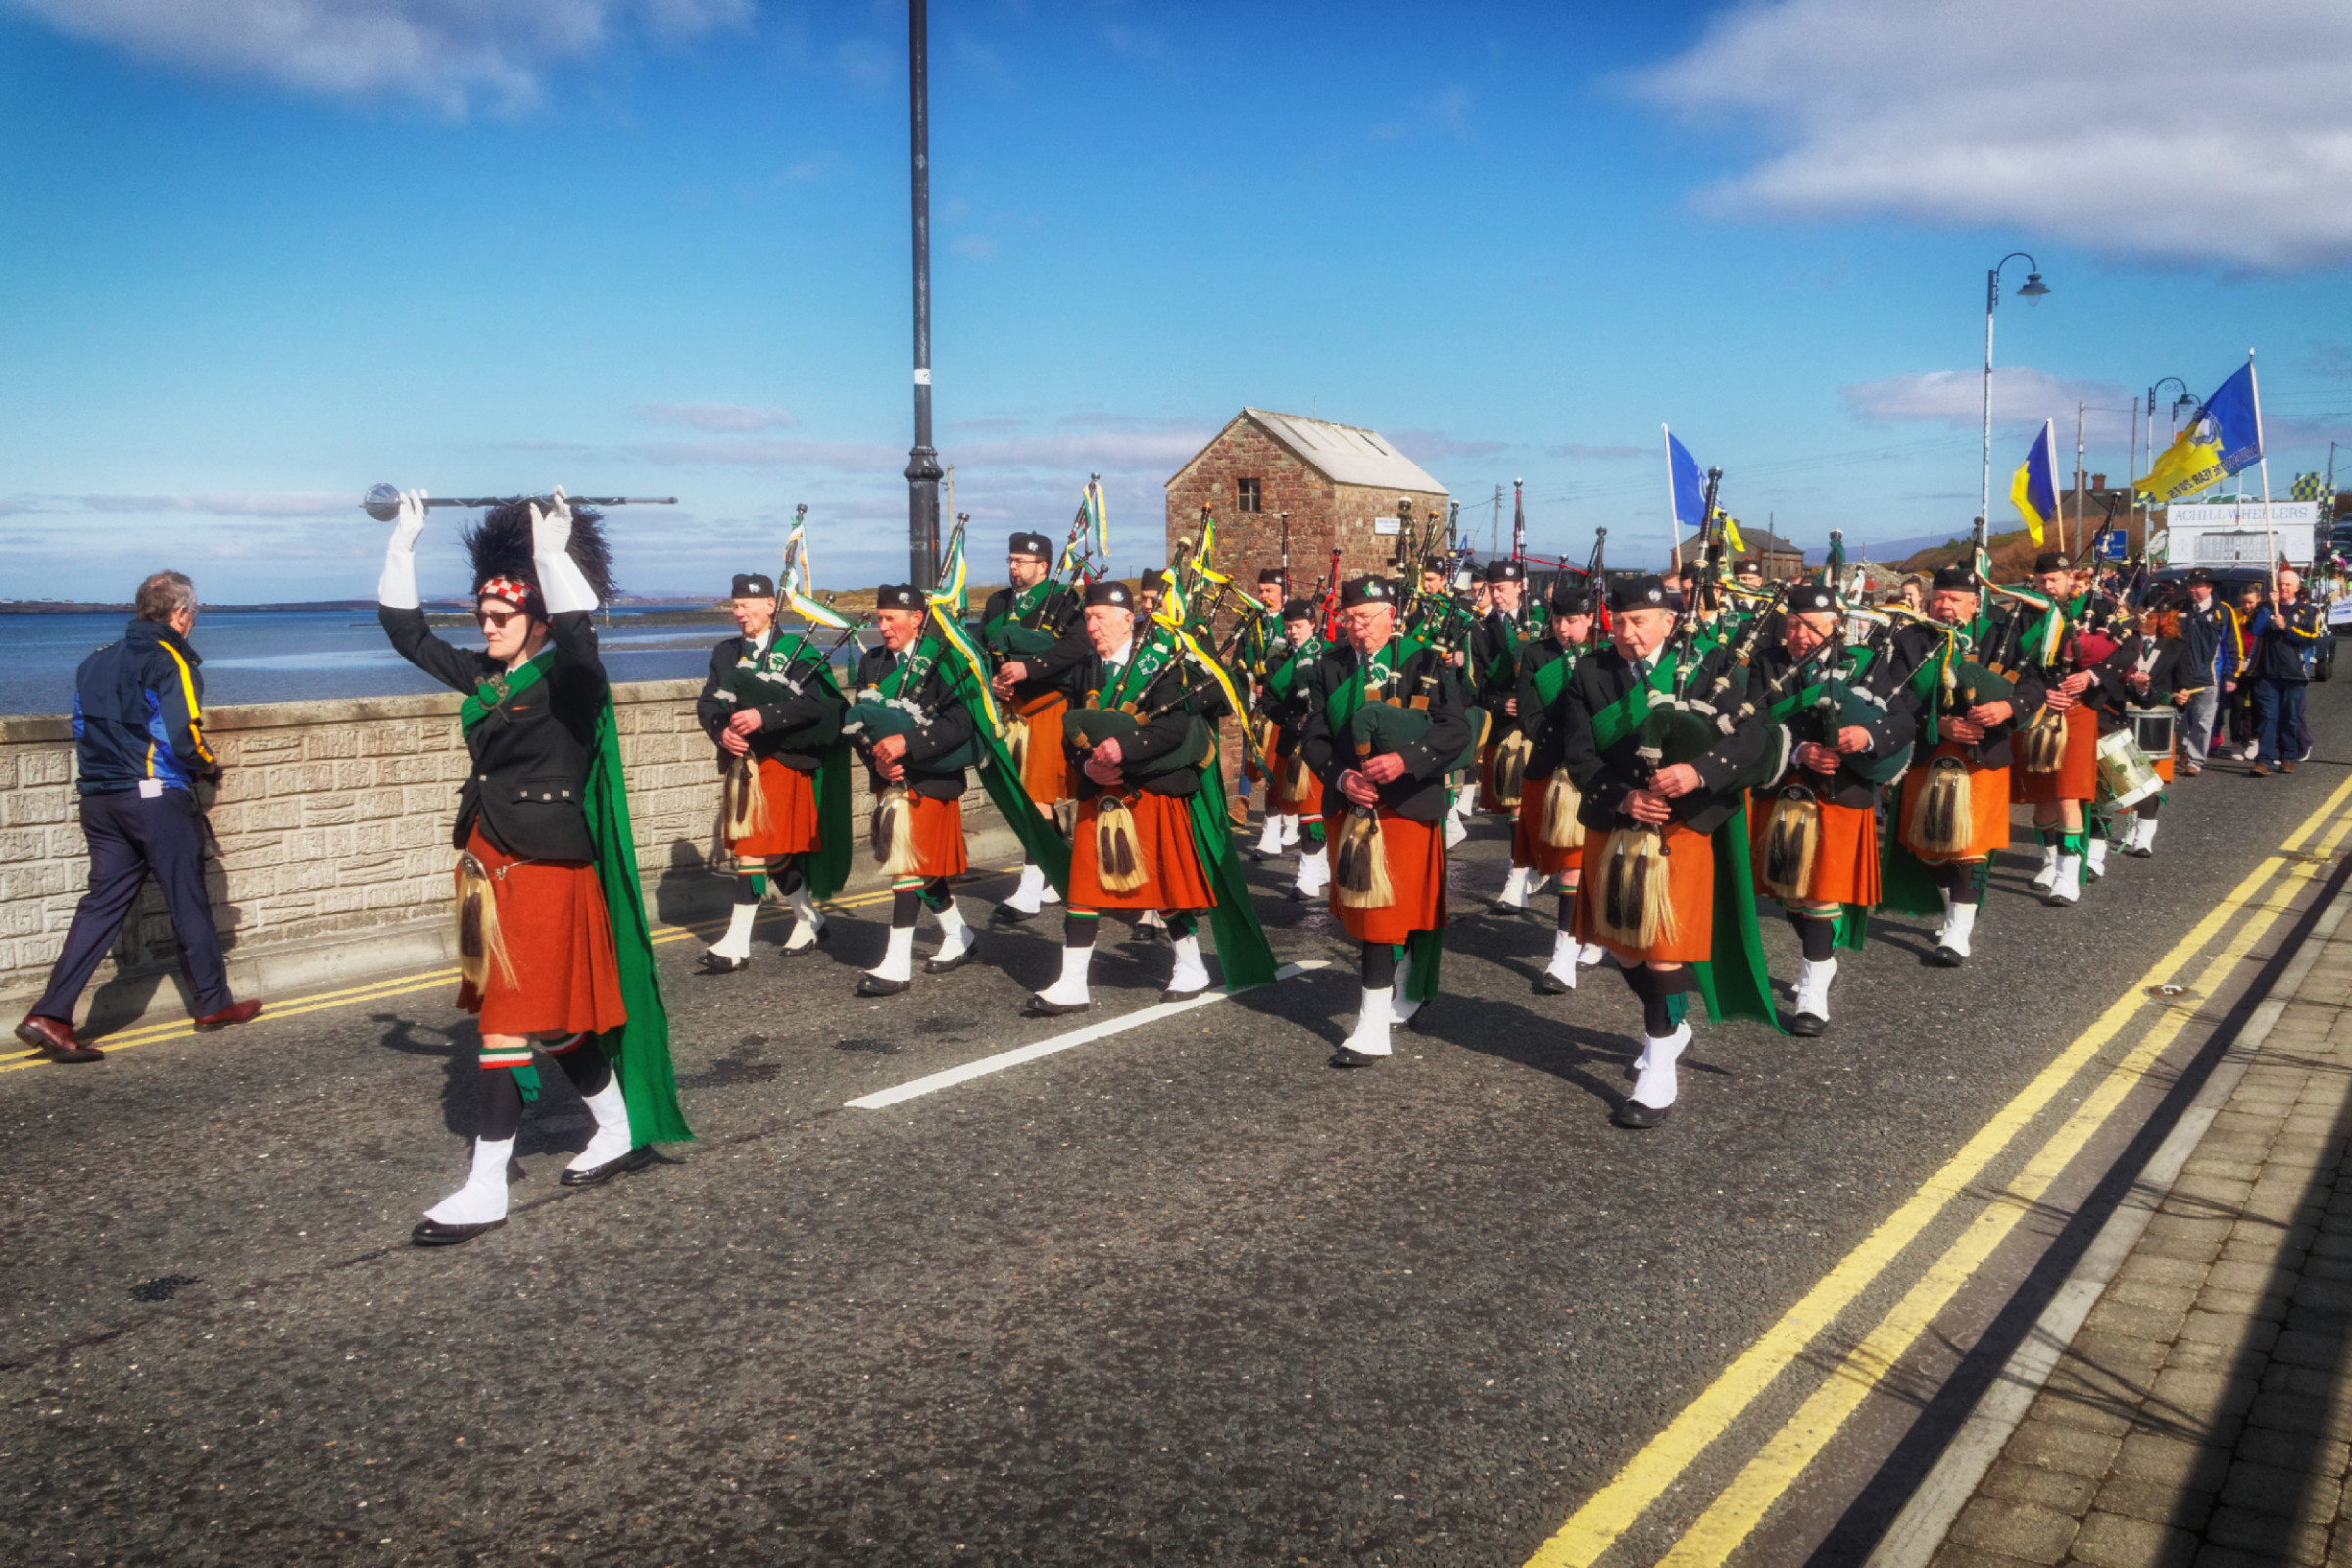 20160320125718-ie-achill-sound_parade-_DxO_13in_DxO96